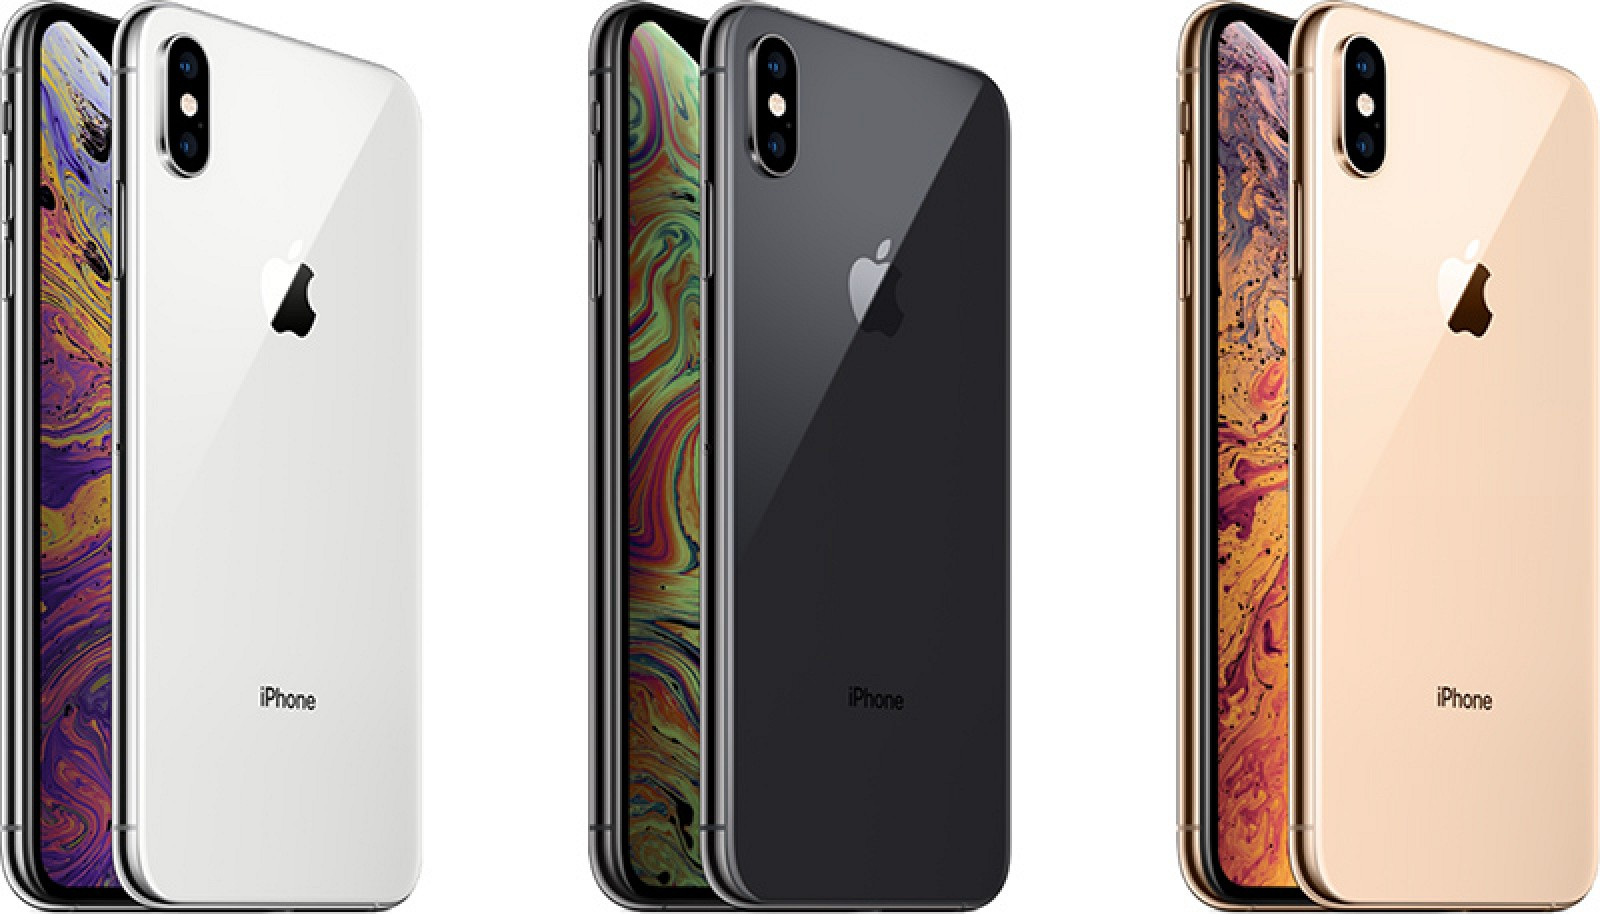 https://cdn.macrumors.com/article-new/2018/09/iphonexsmax.jpg?retina